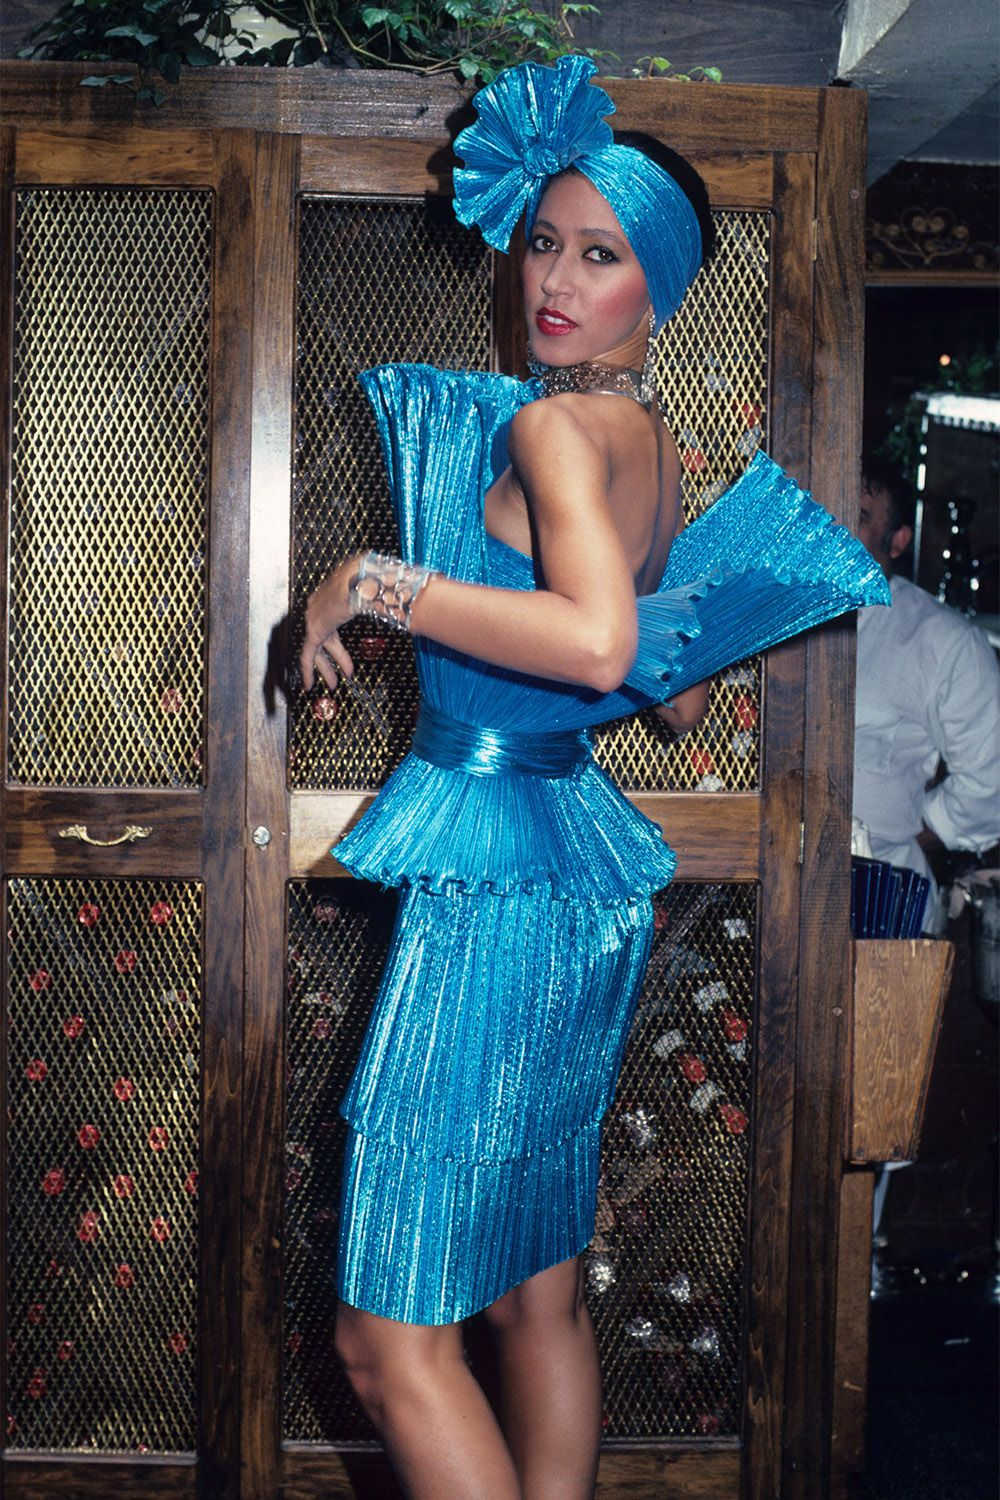 The Best of 80s Fashion - Vintage 80s Outfits and Fashion Trends